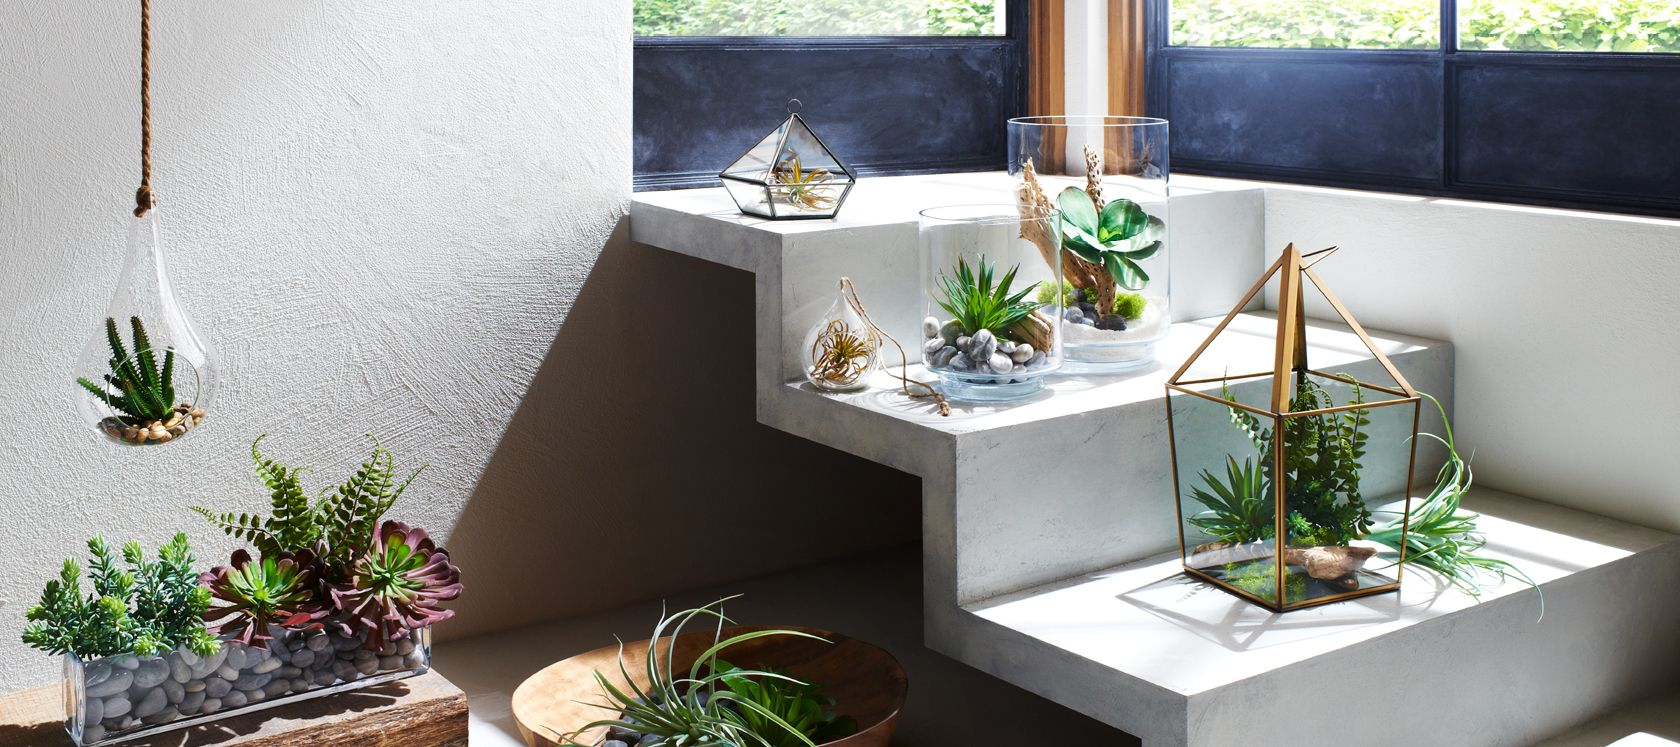 Home decor accessories for a stylish home crate and barrel for House decor accessories